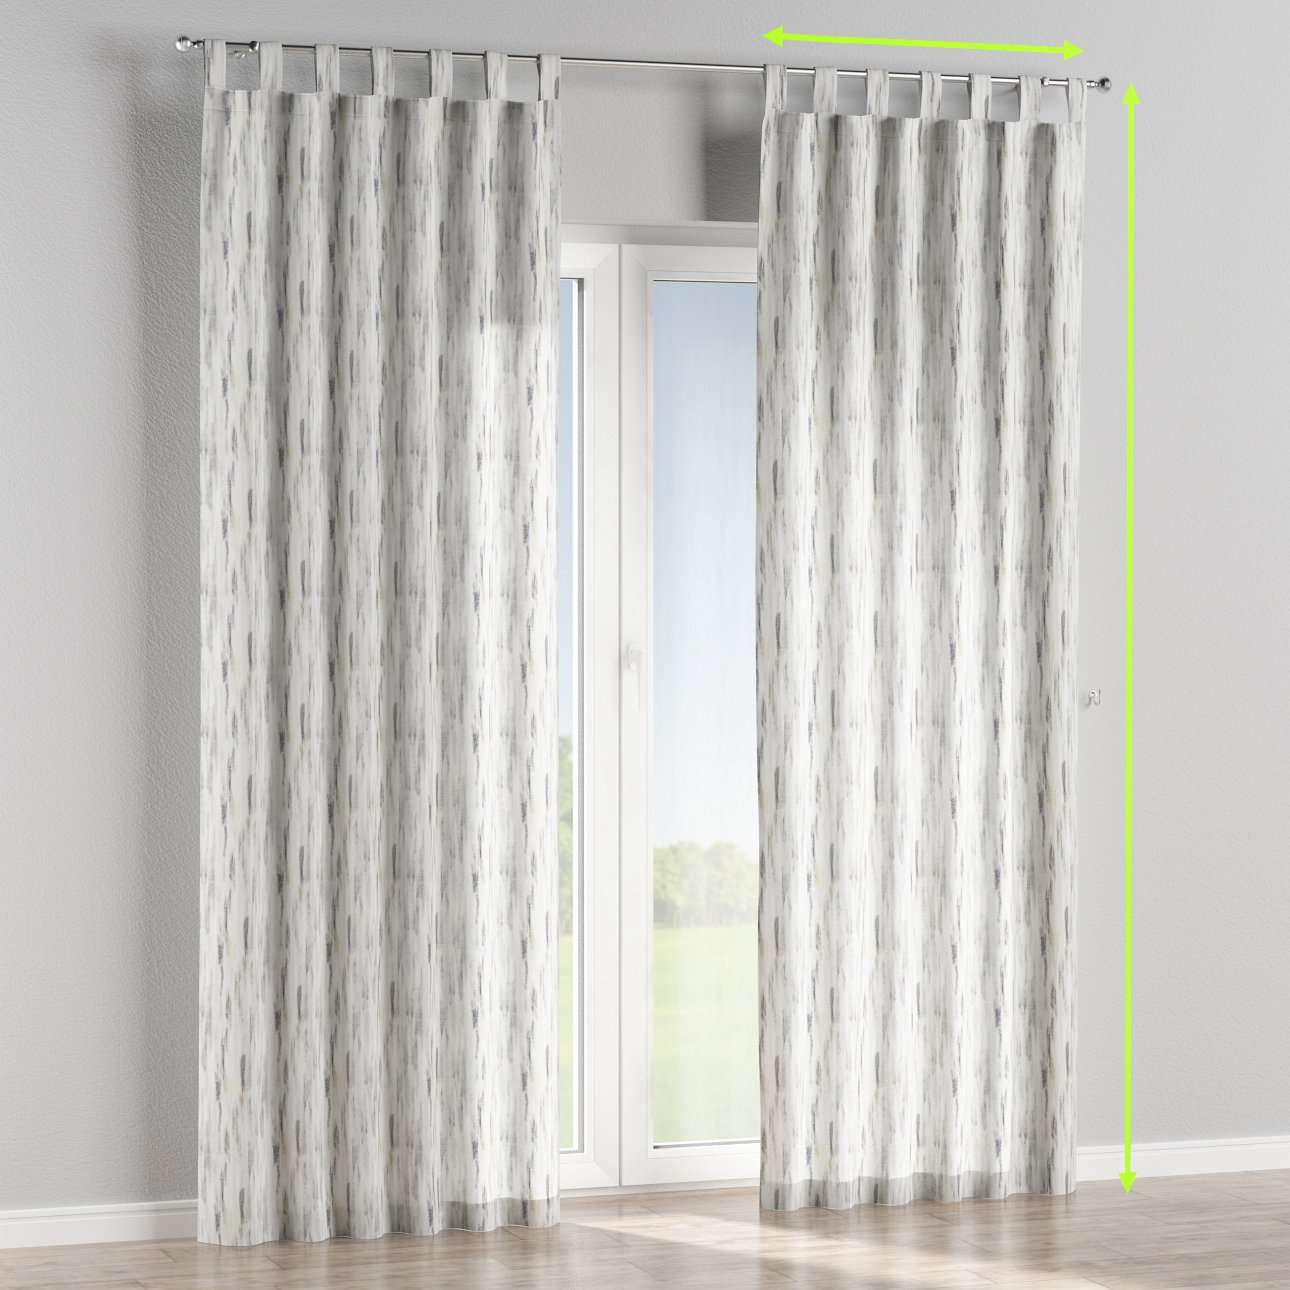 Tab top lined curtains in collection Aquarelle, fabric: 140-66